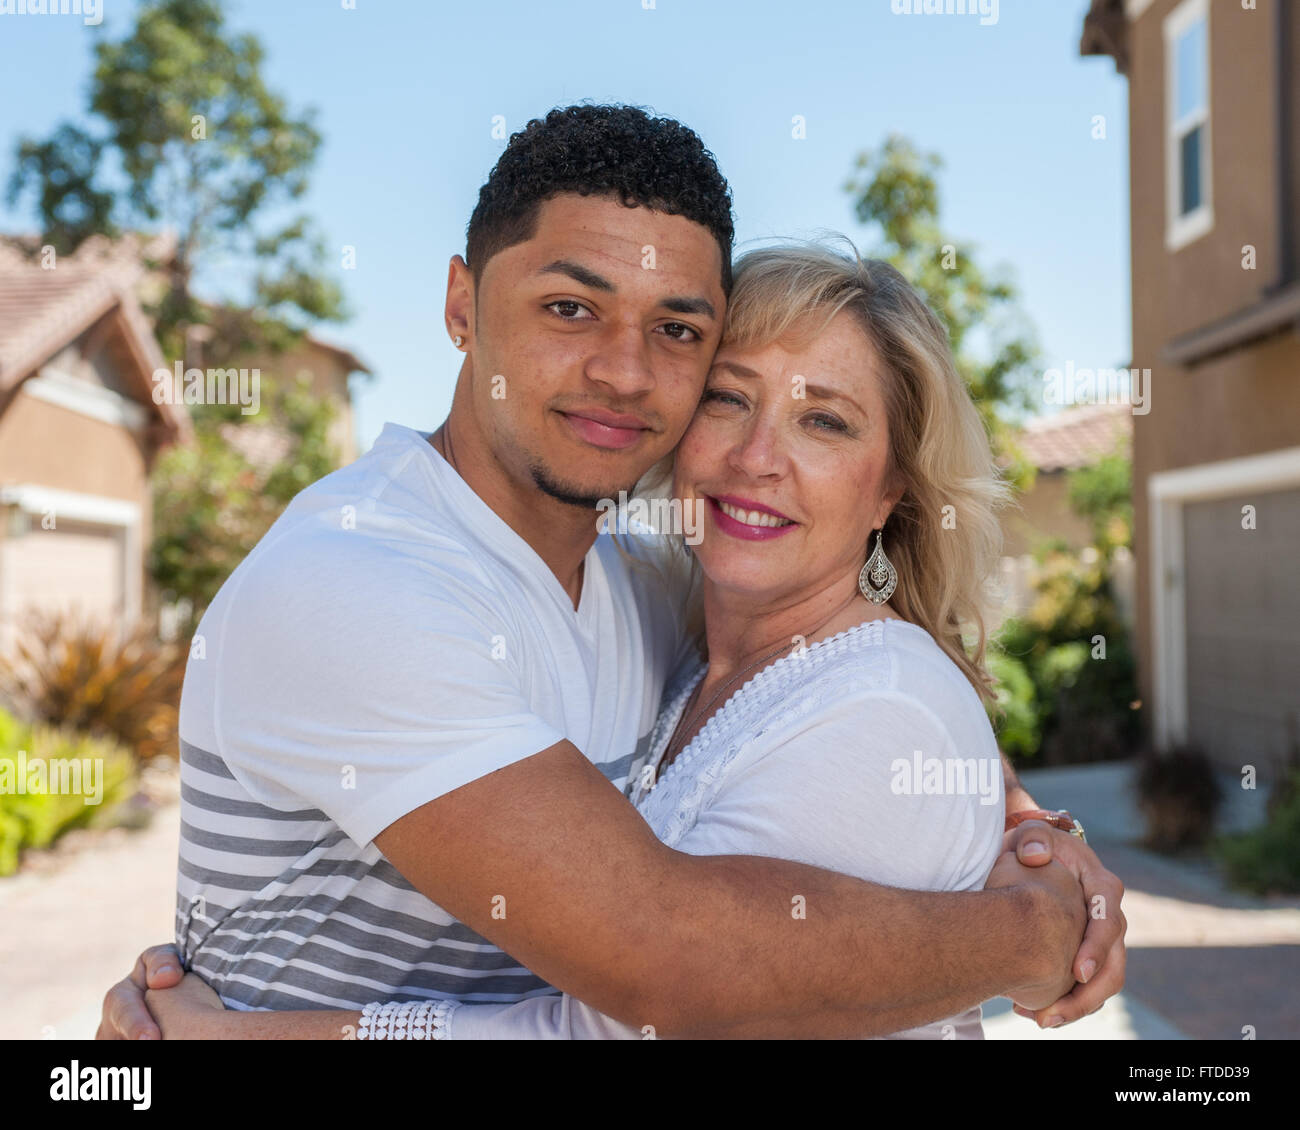 son and mother dating